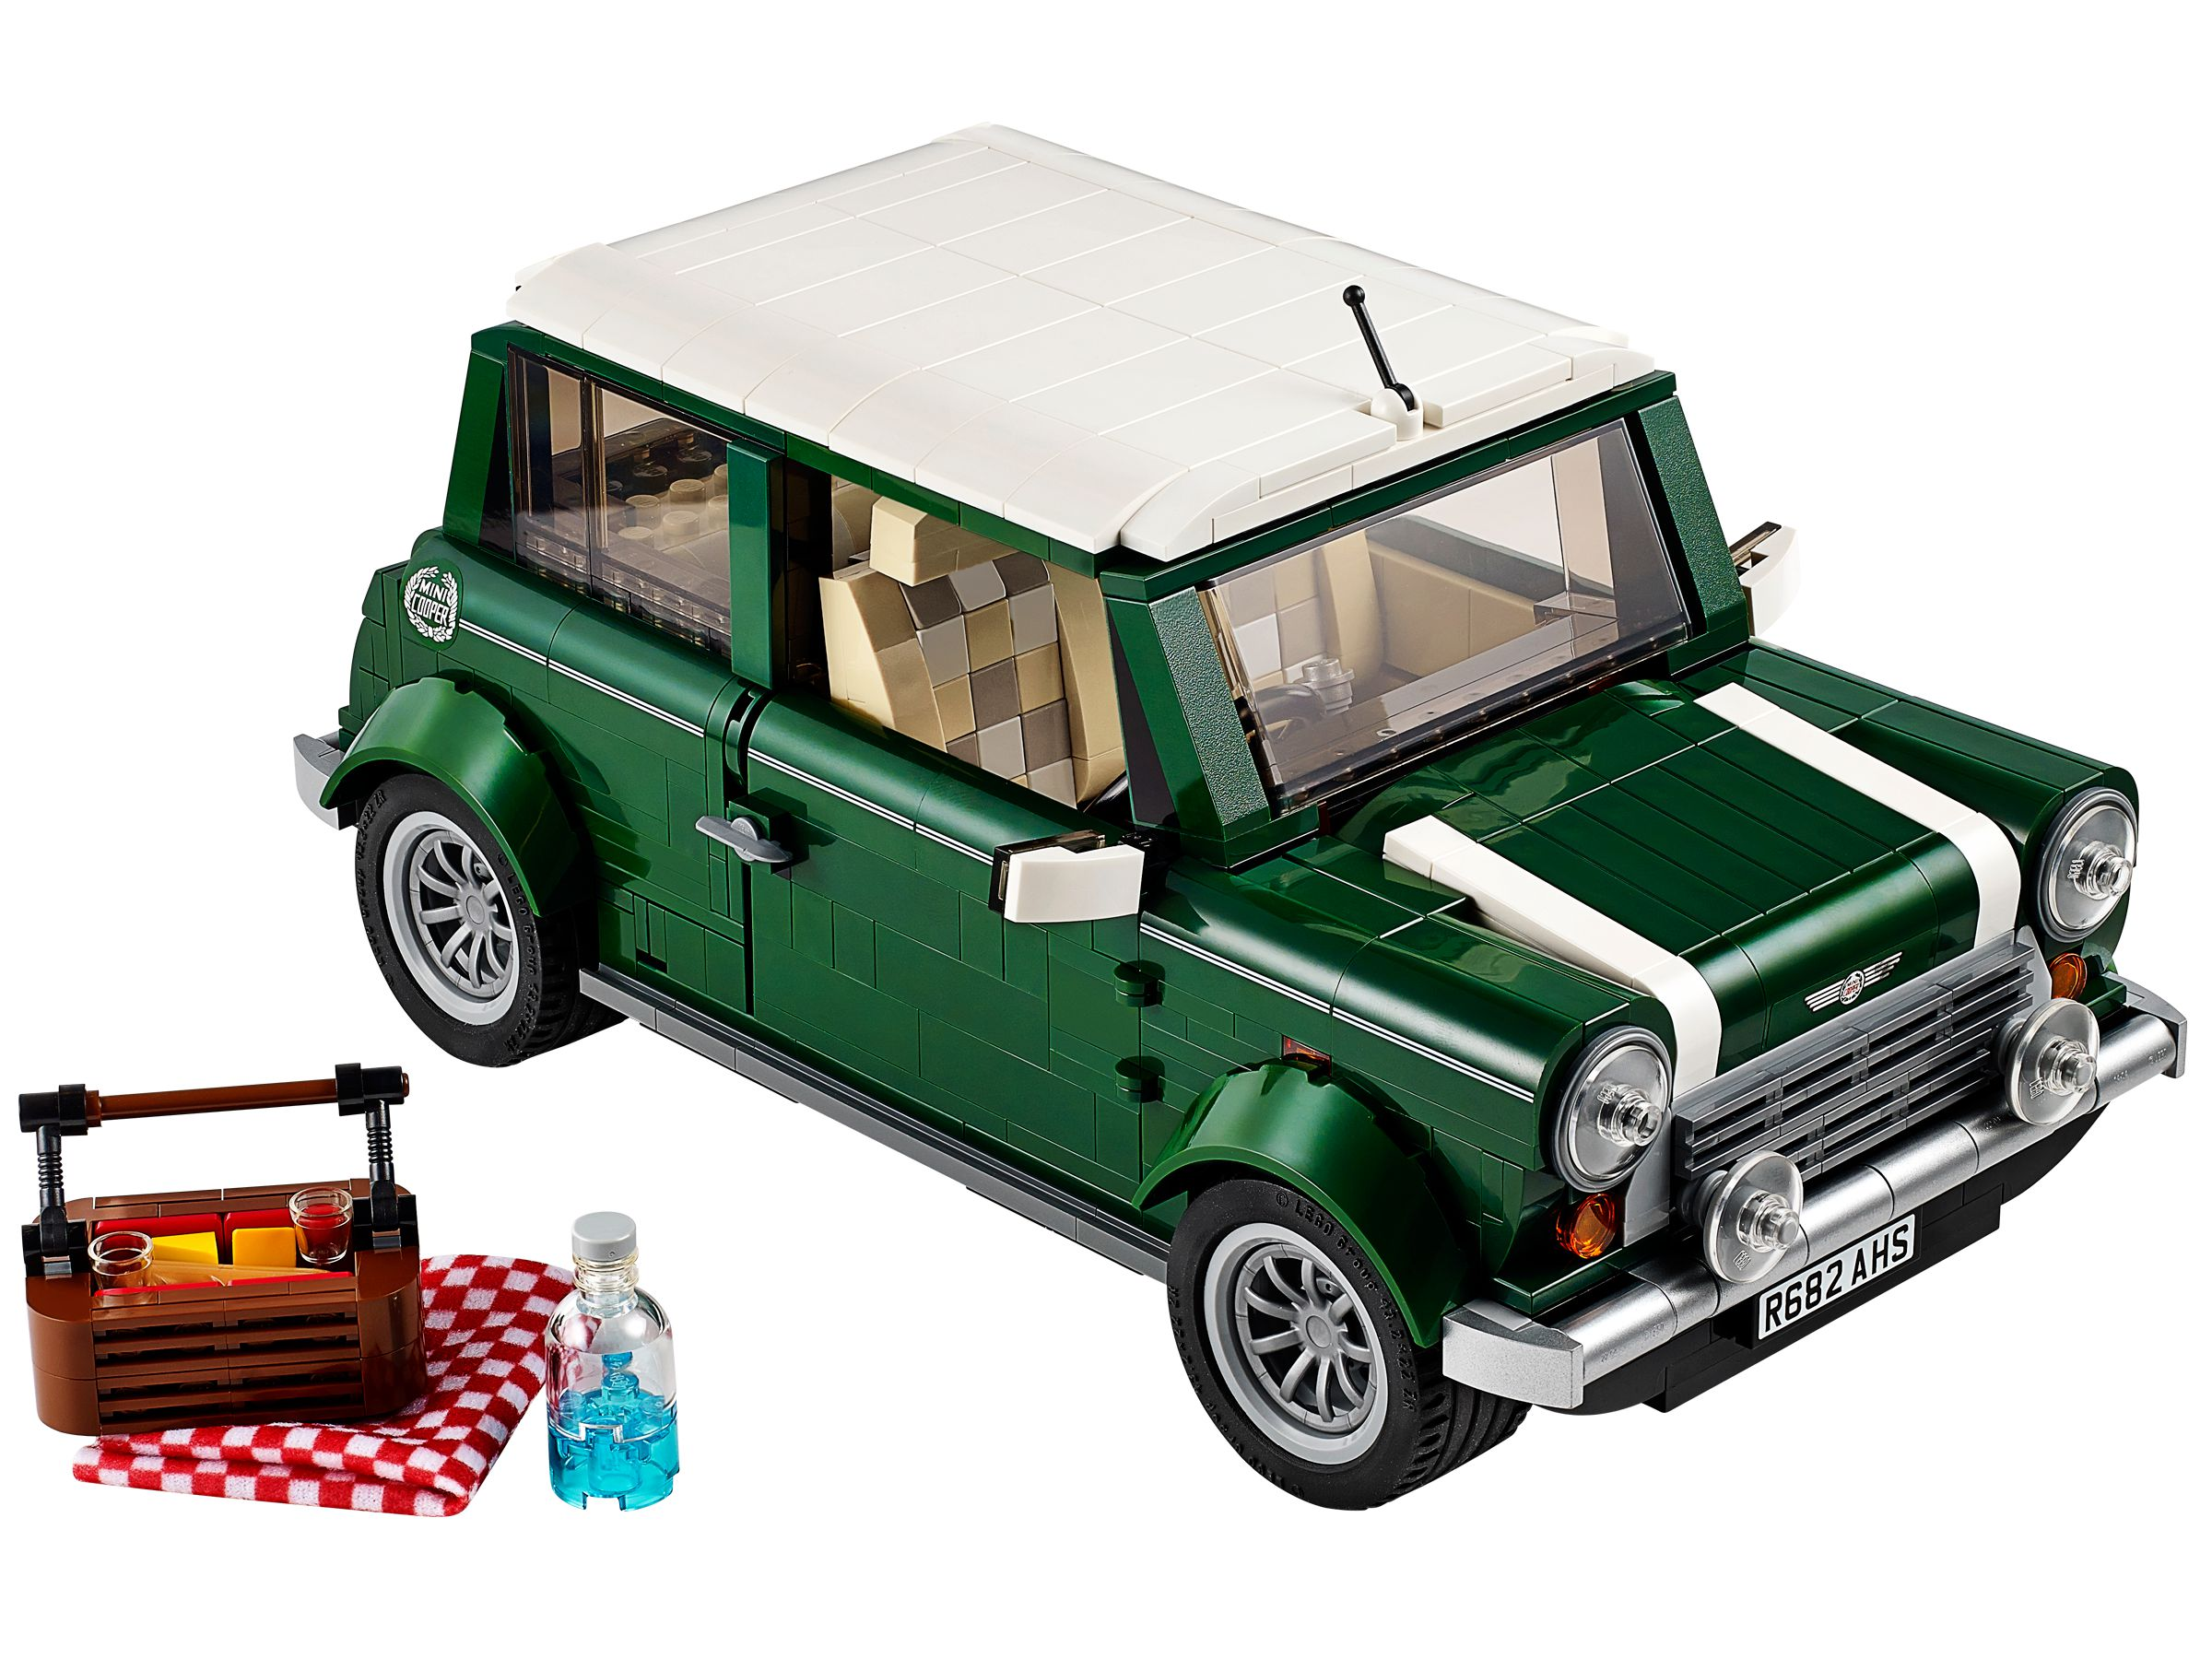 LEGO Advanced Models 10242 MINI Cooper LEGO_10242.jpg